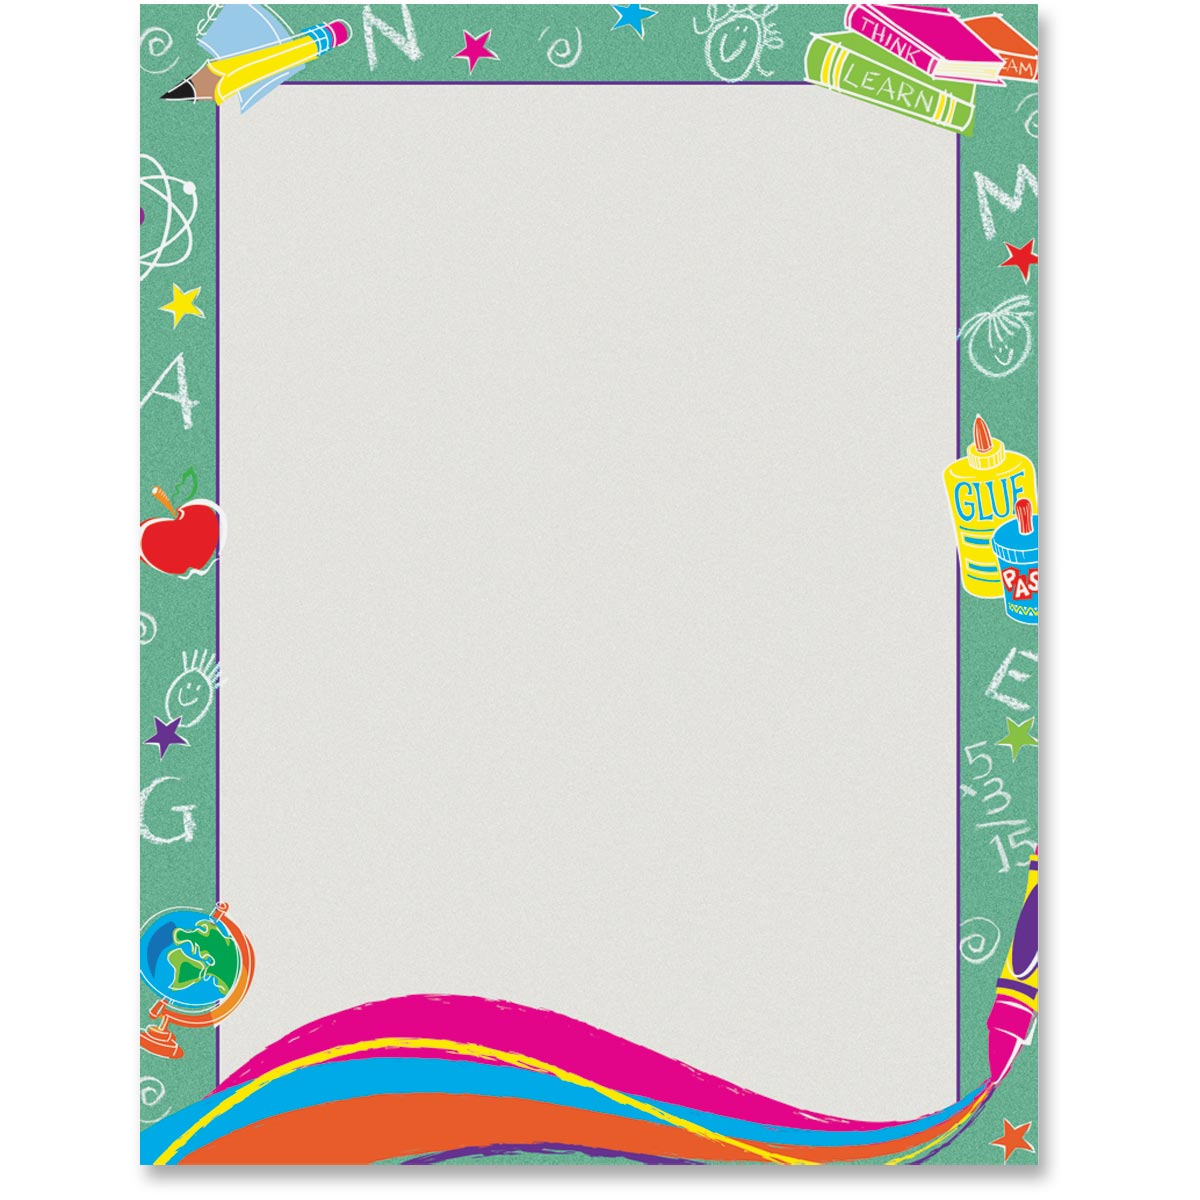 graphic relating to Printable Border Paper known as Clroom Corner Border Printable Paper Andersons